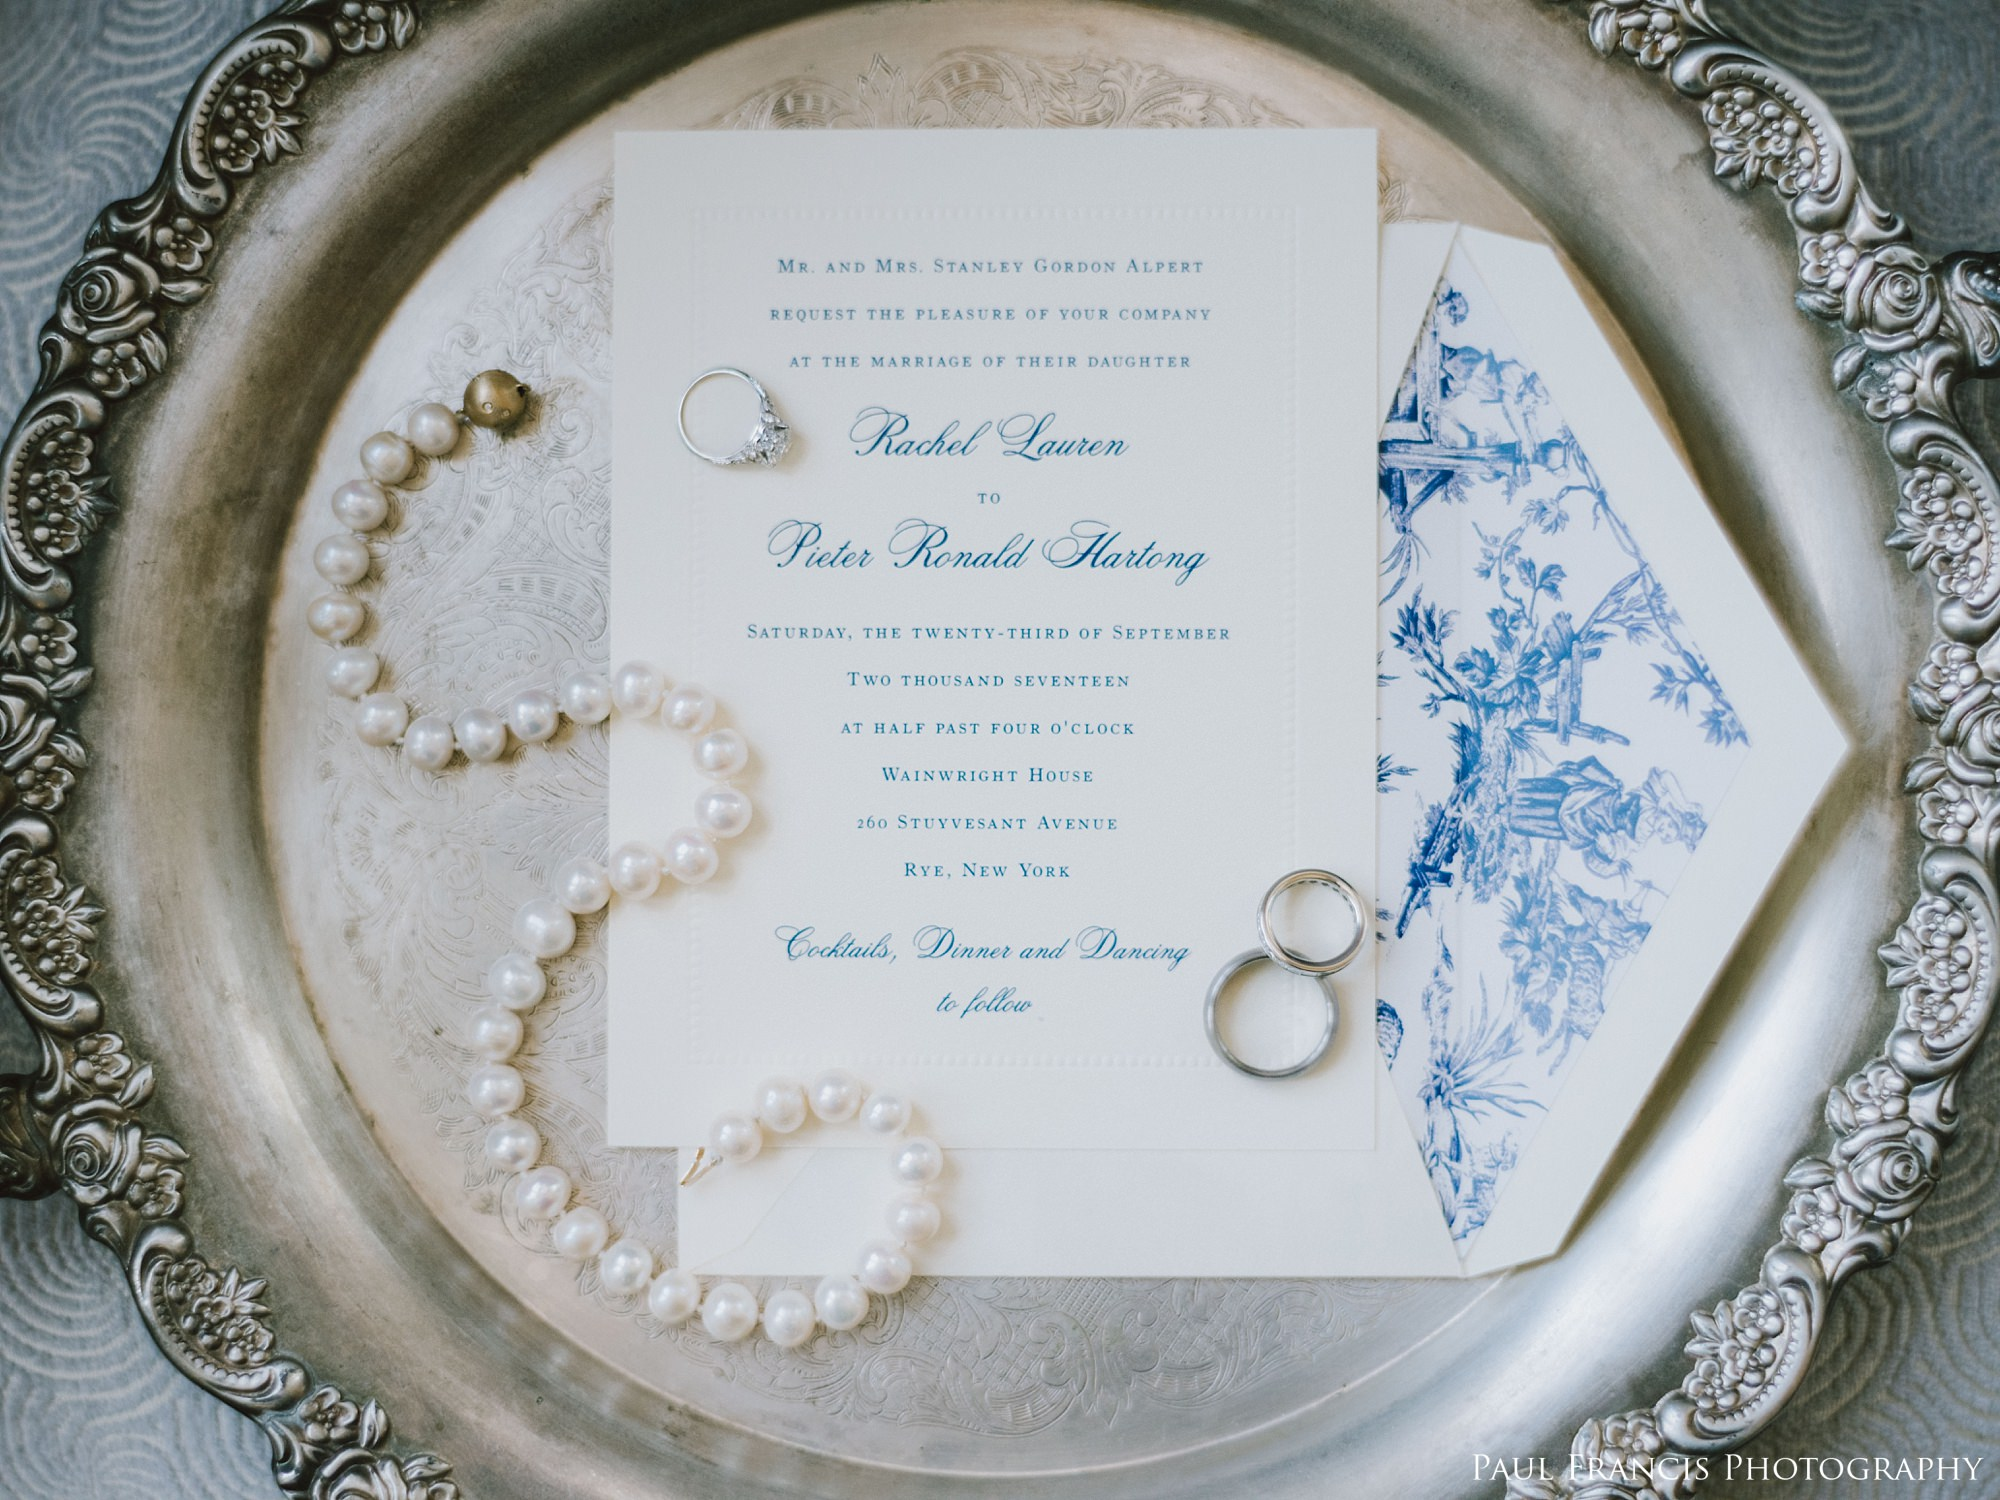 A HUGE shoutout to the incredible women of  Party Party  and  Coral Pheasant . Mary of Party Party helped Rachel and Pieter come up with such a gorgeous invitation design, that really captured the classic and traditional feel of their event with that prominent pop of French Blue. And thanks to Nichole of Coral Pheasant, we were able to complete the look with this STUNNING custom toile envelope liner!